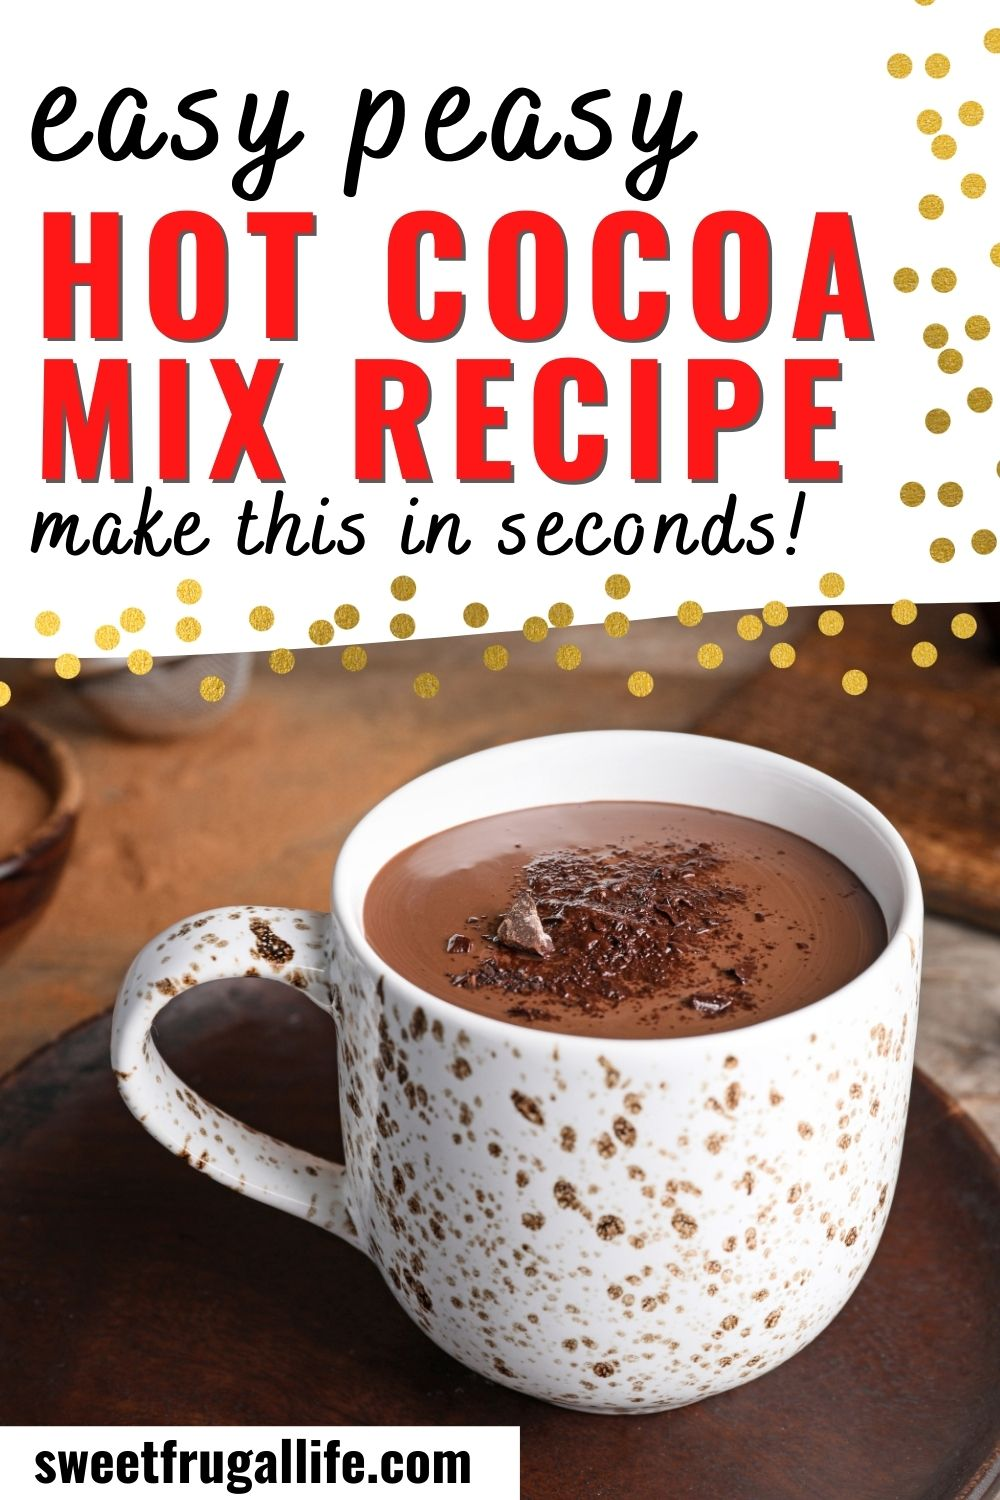 hot cocoa mix recipe - how to make hot chocolate at home